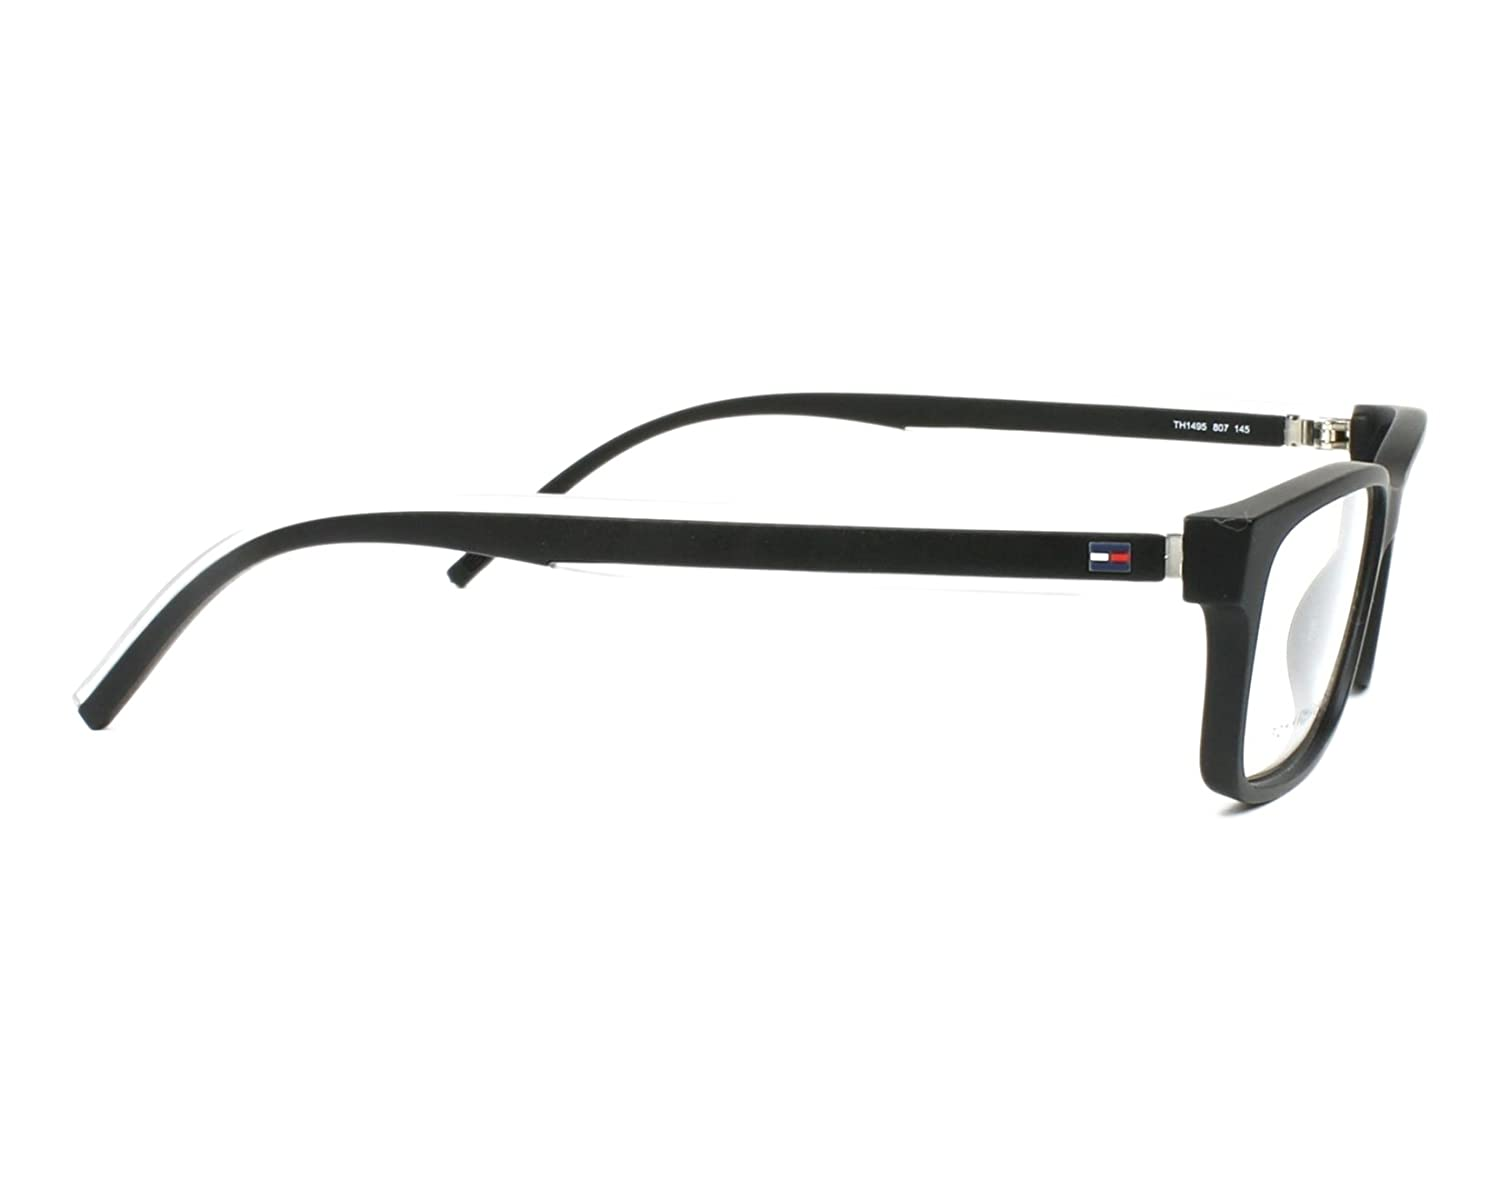 9ee9137a2b5 Tommy Hilfiger frame (TH-1495 807) Acetate Matt Black - Transparent Crystal  at Amazon Men s Clothing store